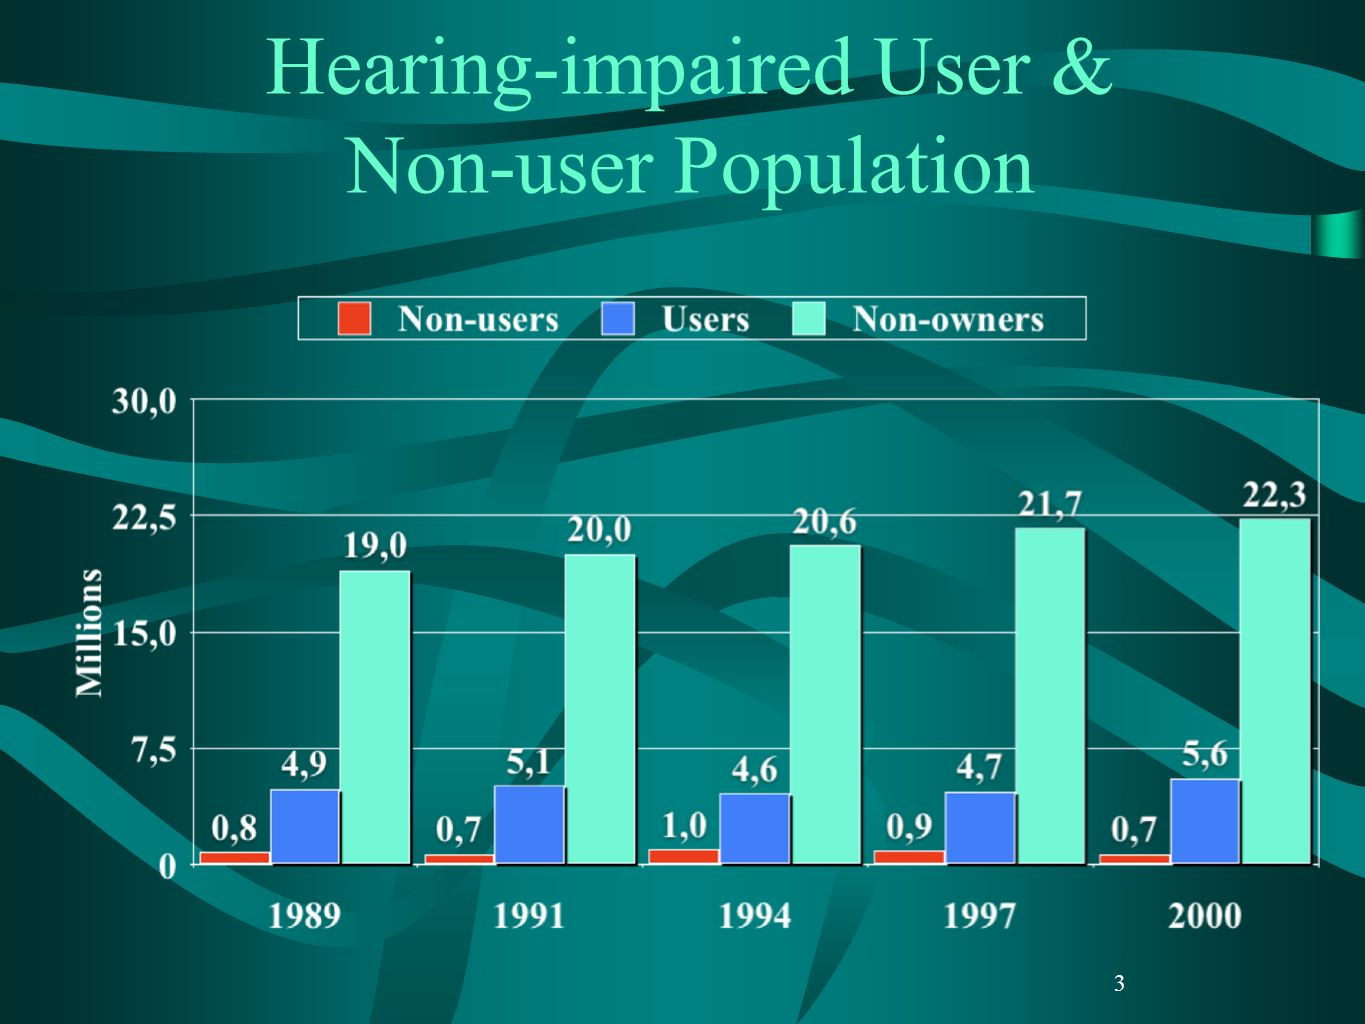 Hearing-impaired User & Non-user Population